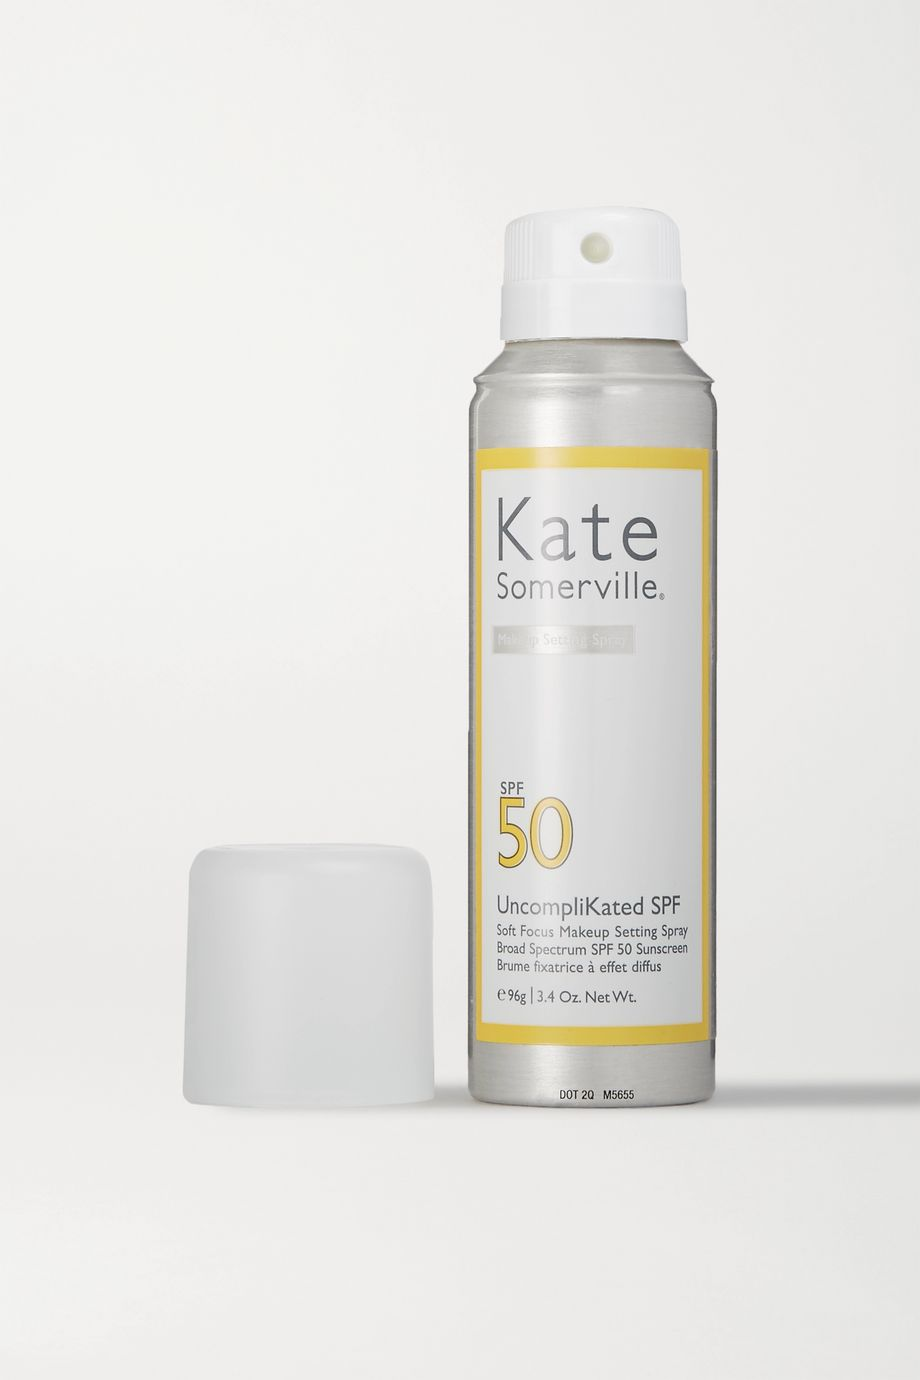 Kate Somerville UncompliKated Soft Focus Makeup Setting Spray SPF50, 96g